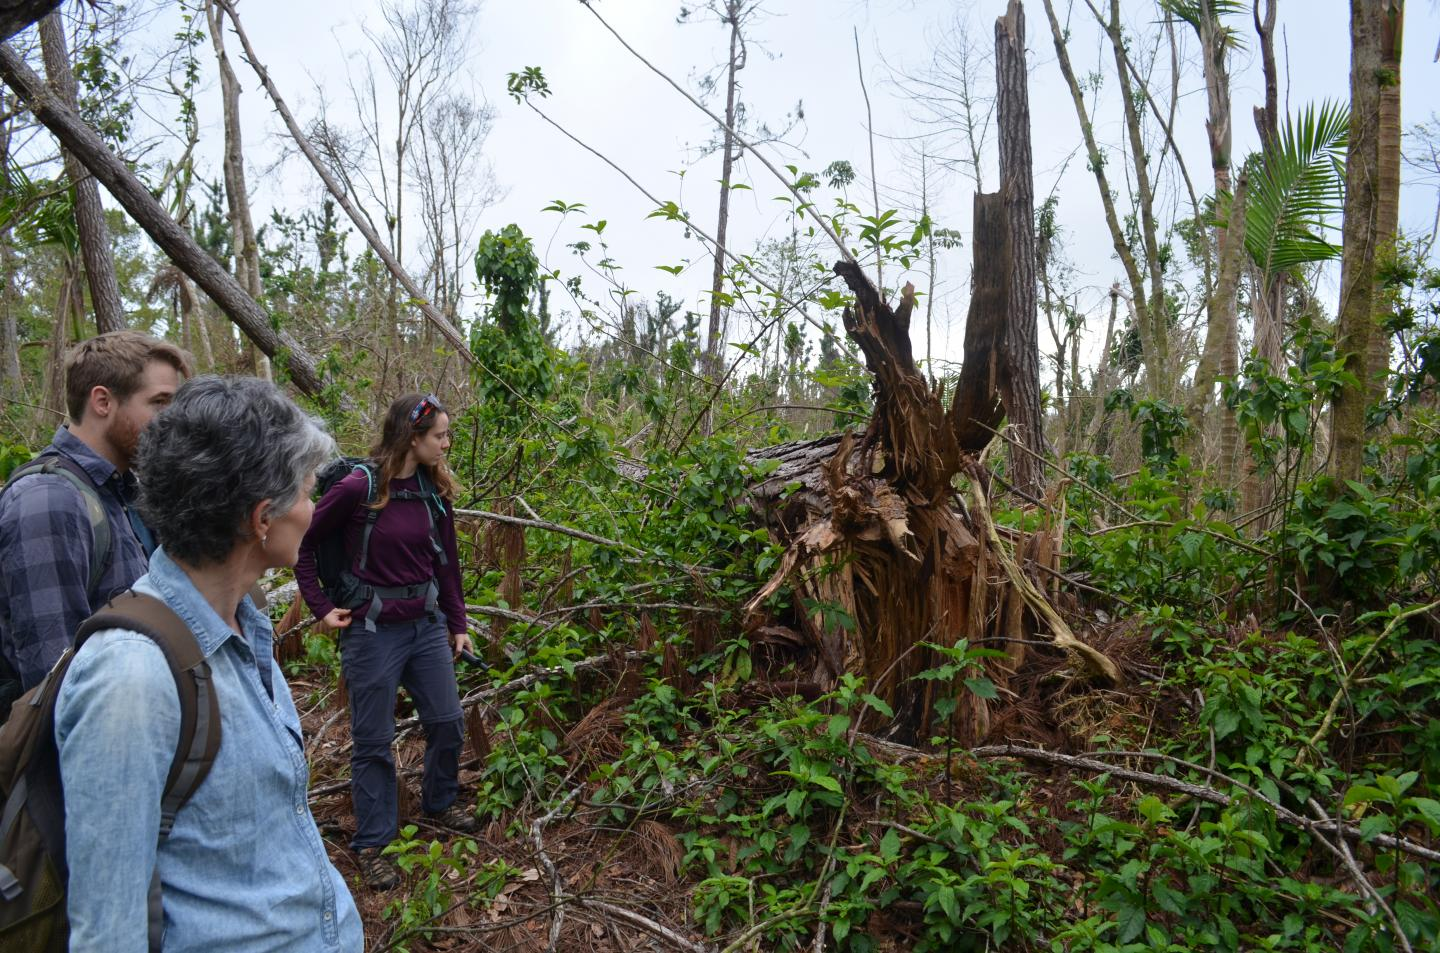 Rain, More Than Wind, Led to Massive Toppling of Trees in ...